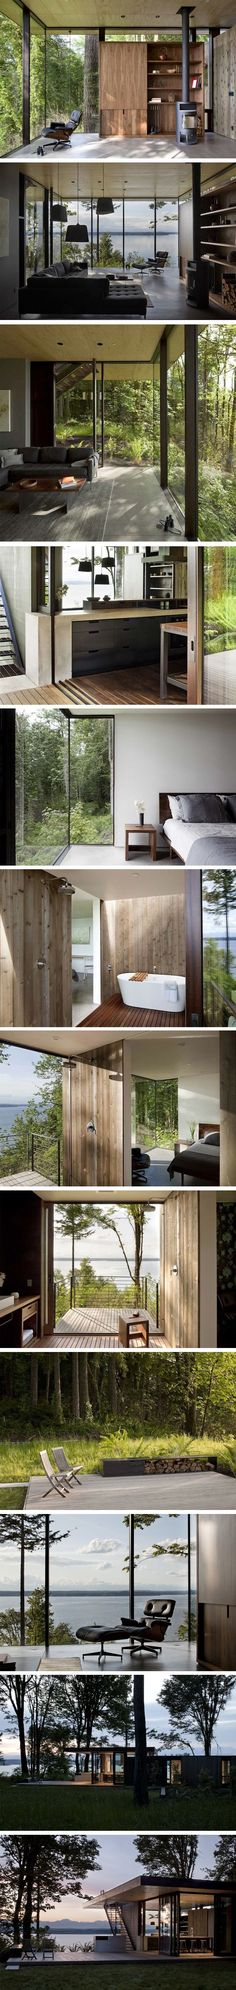 Case Inlet Retreat par MW/Works Architecture+Design - 2